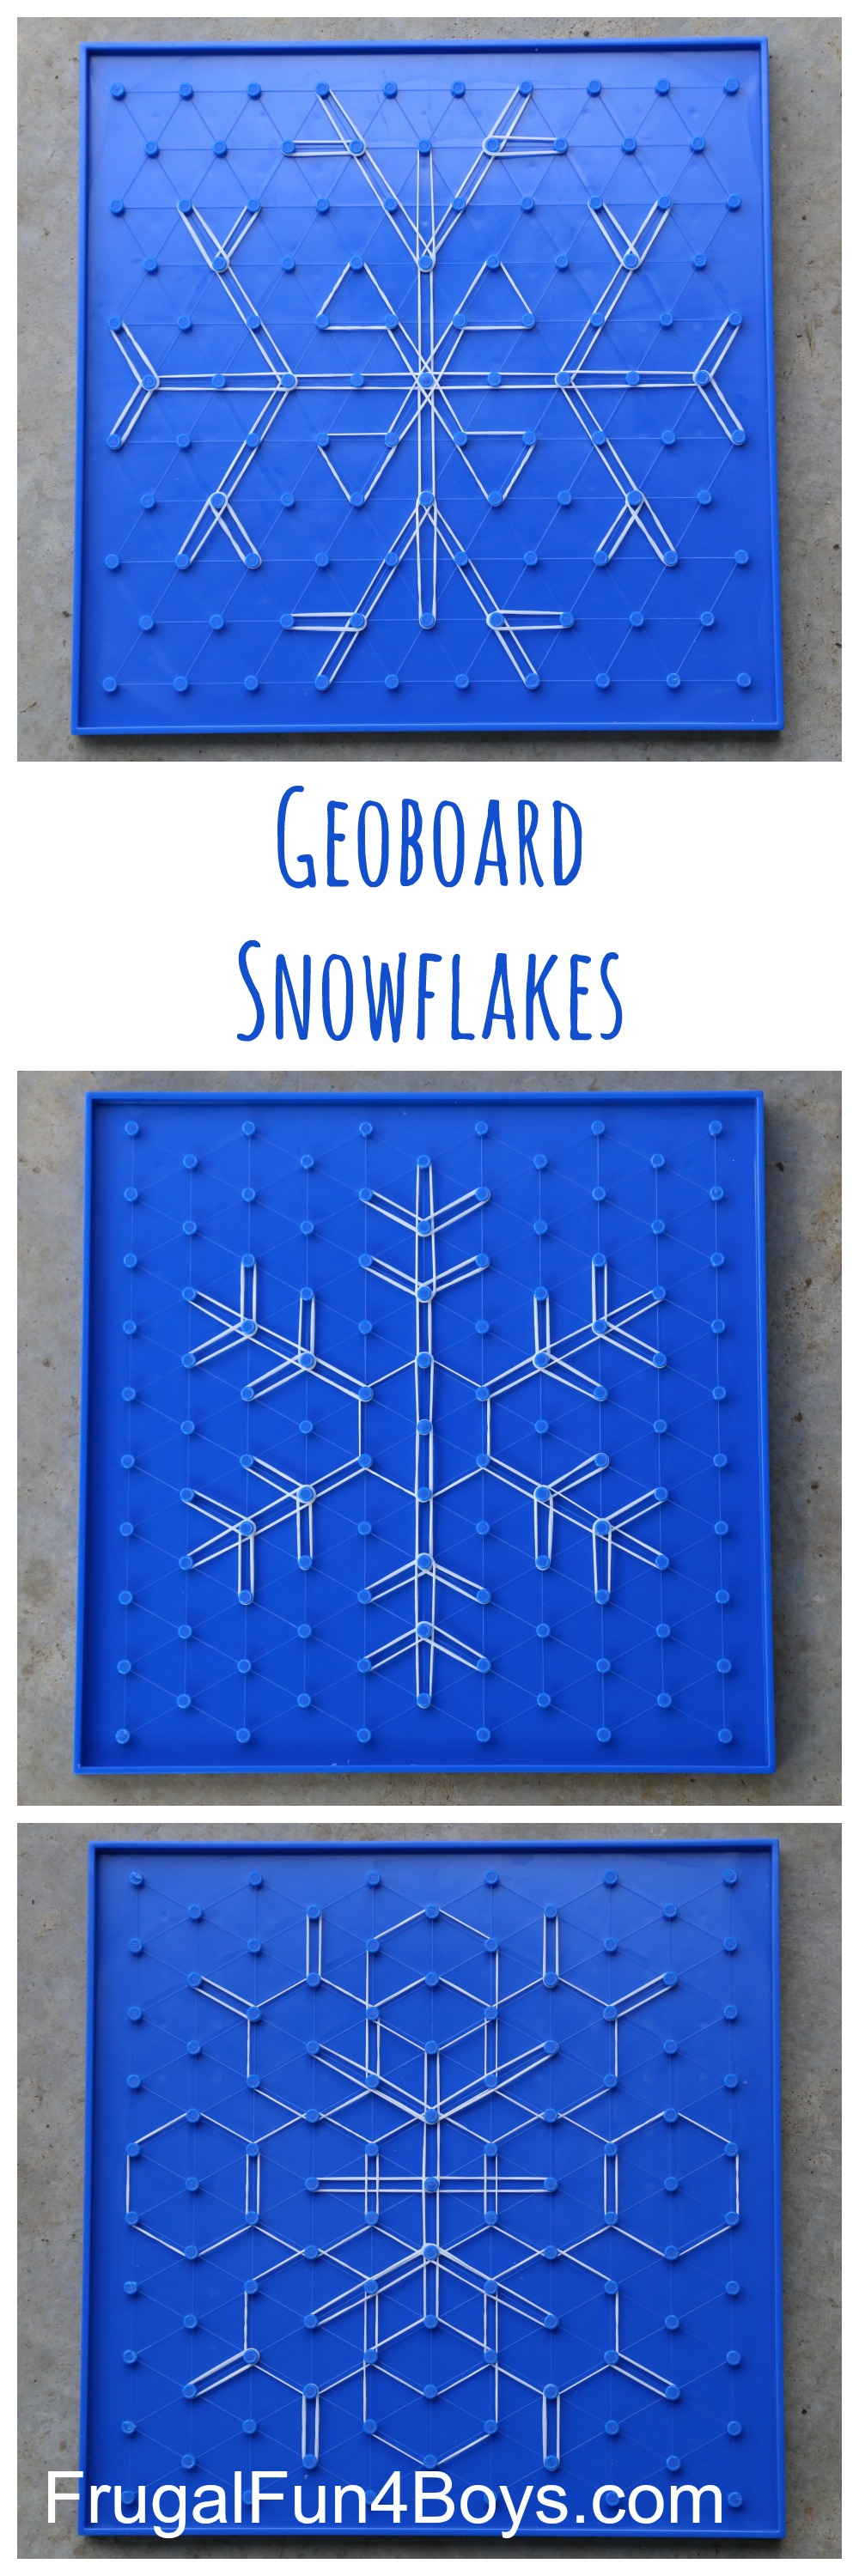 Geoboard Snowflakes - Winter STEM Activity for Kids